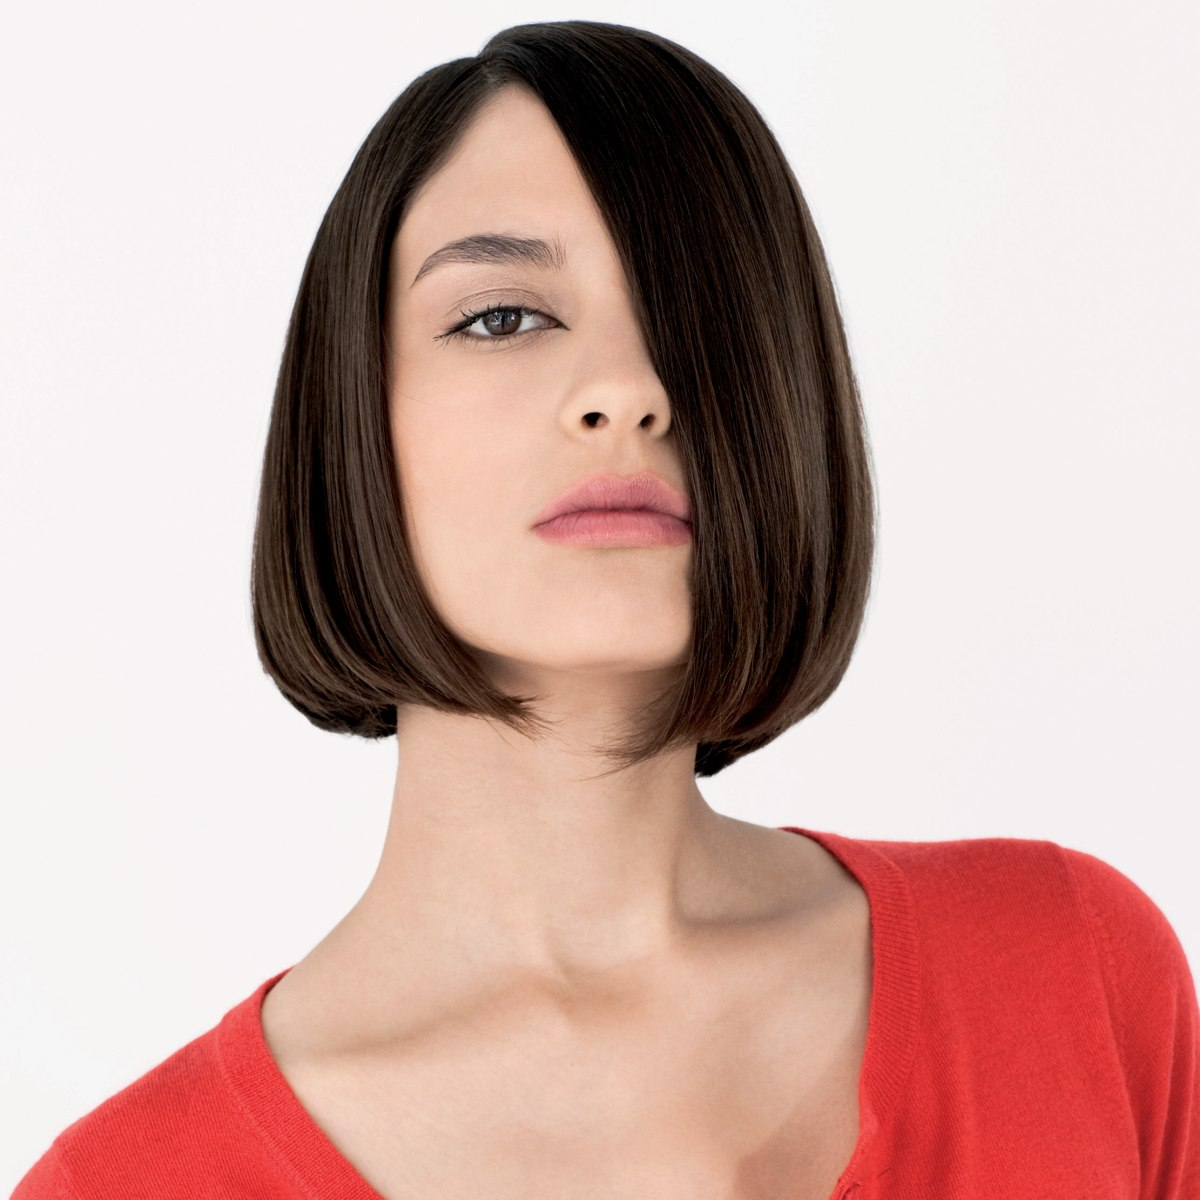 Define Bob Haircut Image Collections Haircut Ideas For Women And Man - Bob hairstyle define